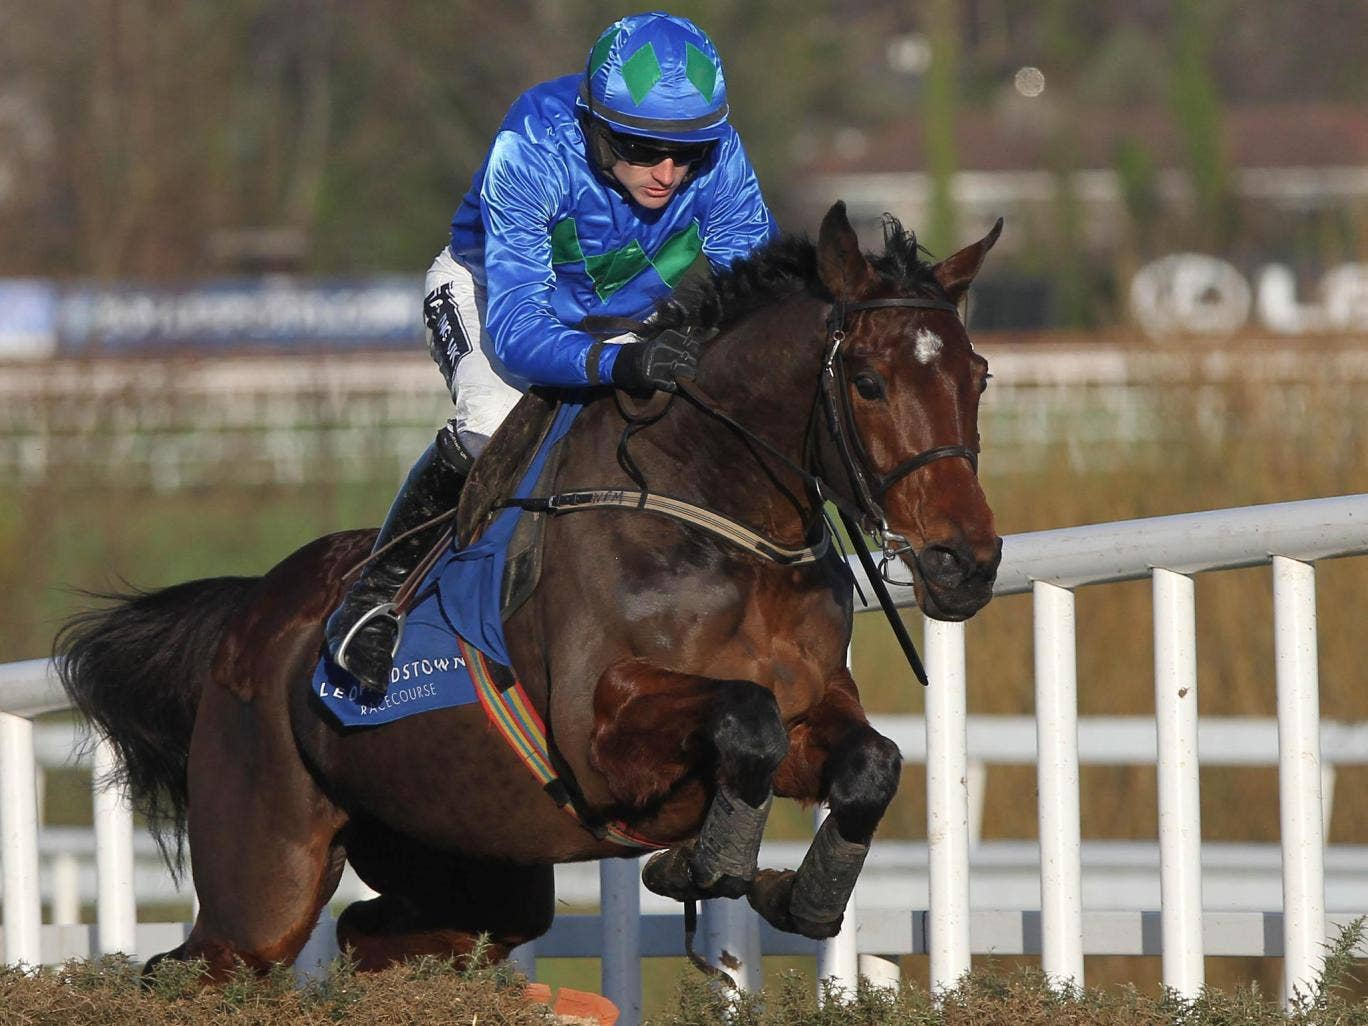 Hurricane Fly gained a bloodless victory in the Istabraq Festival Hurdle at Leopardstown on Saturday